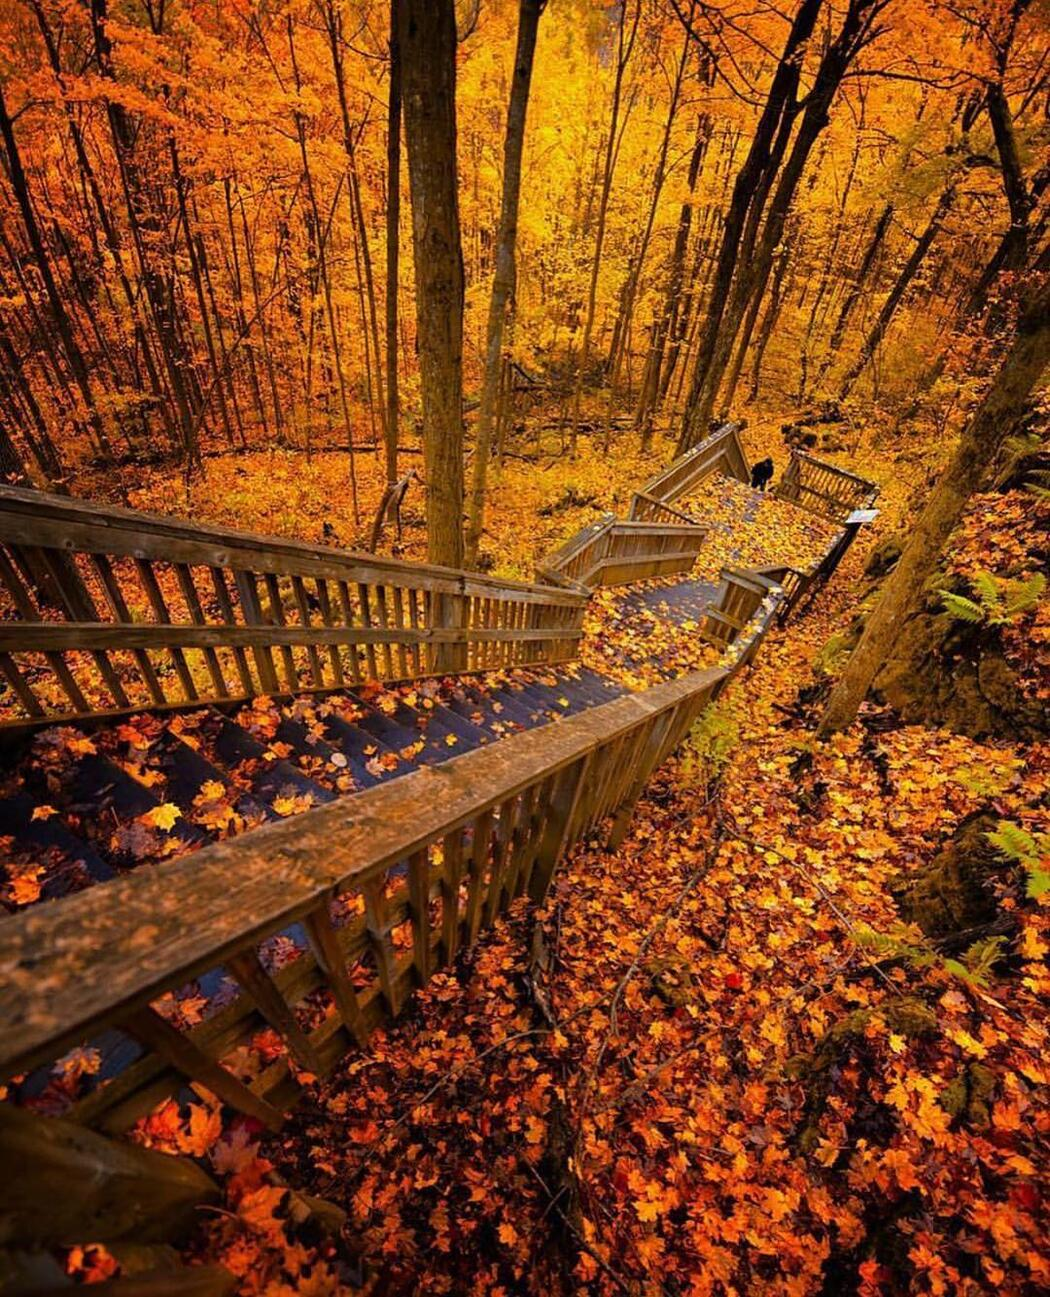 Wooden stairway down to a platform in a colourful autumn forest.